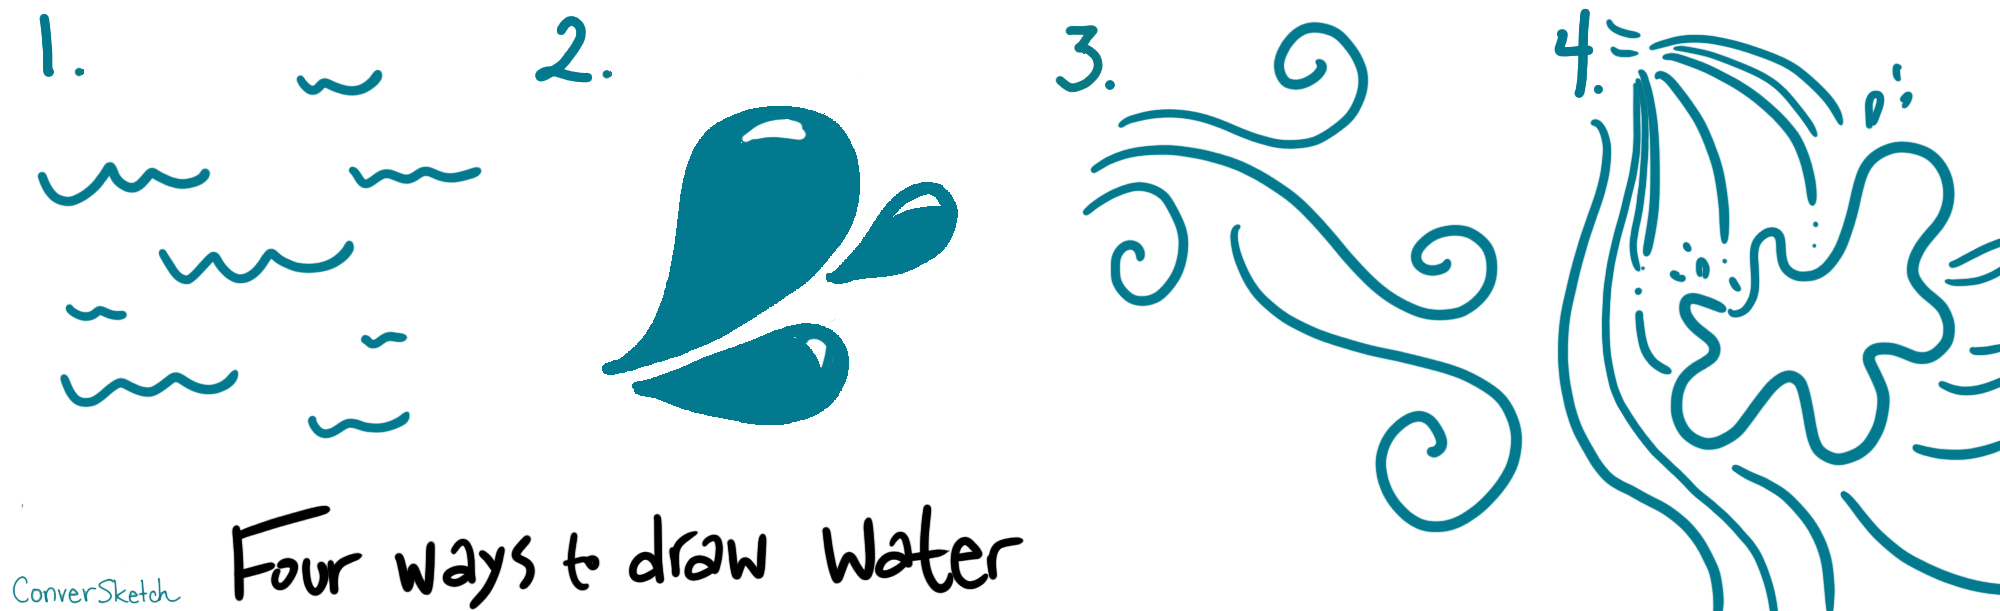 conversketch-learn-to-draw-water